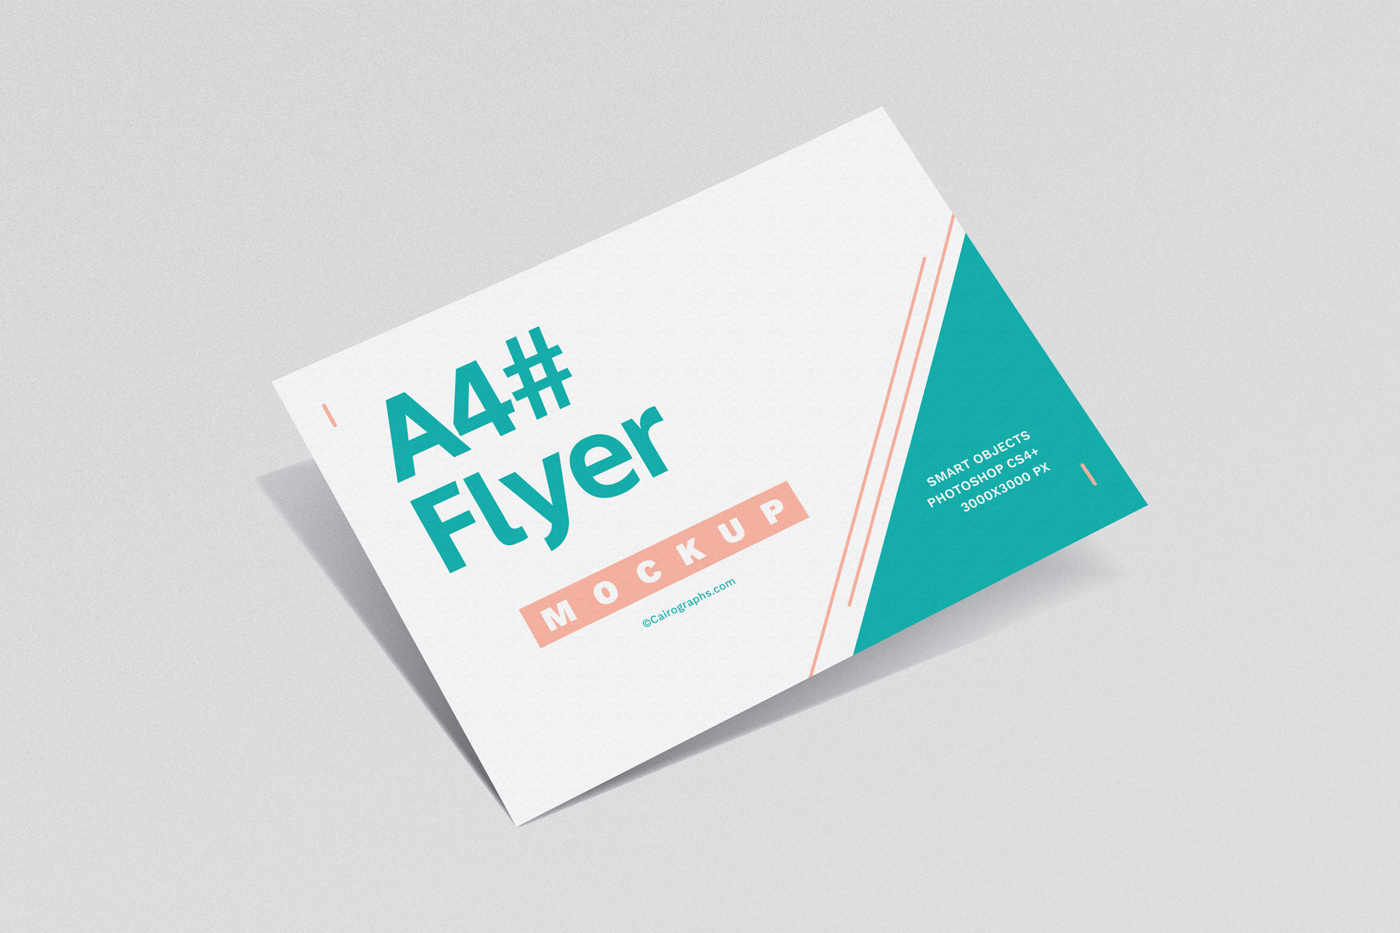 Posters & Flyers Mockups Vol.2 example image 9